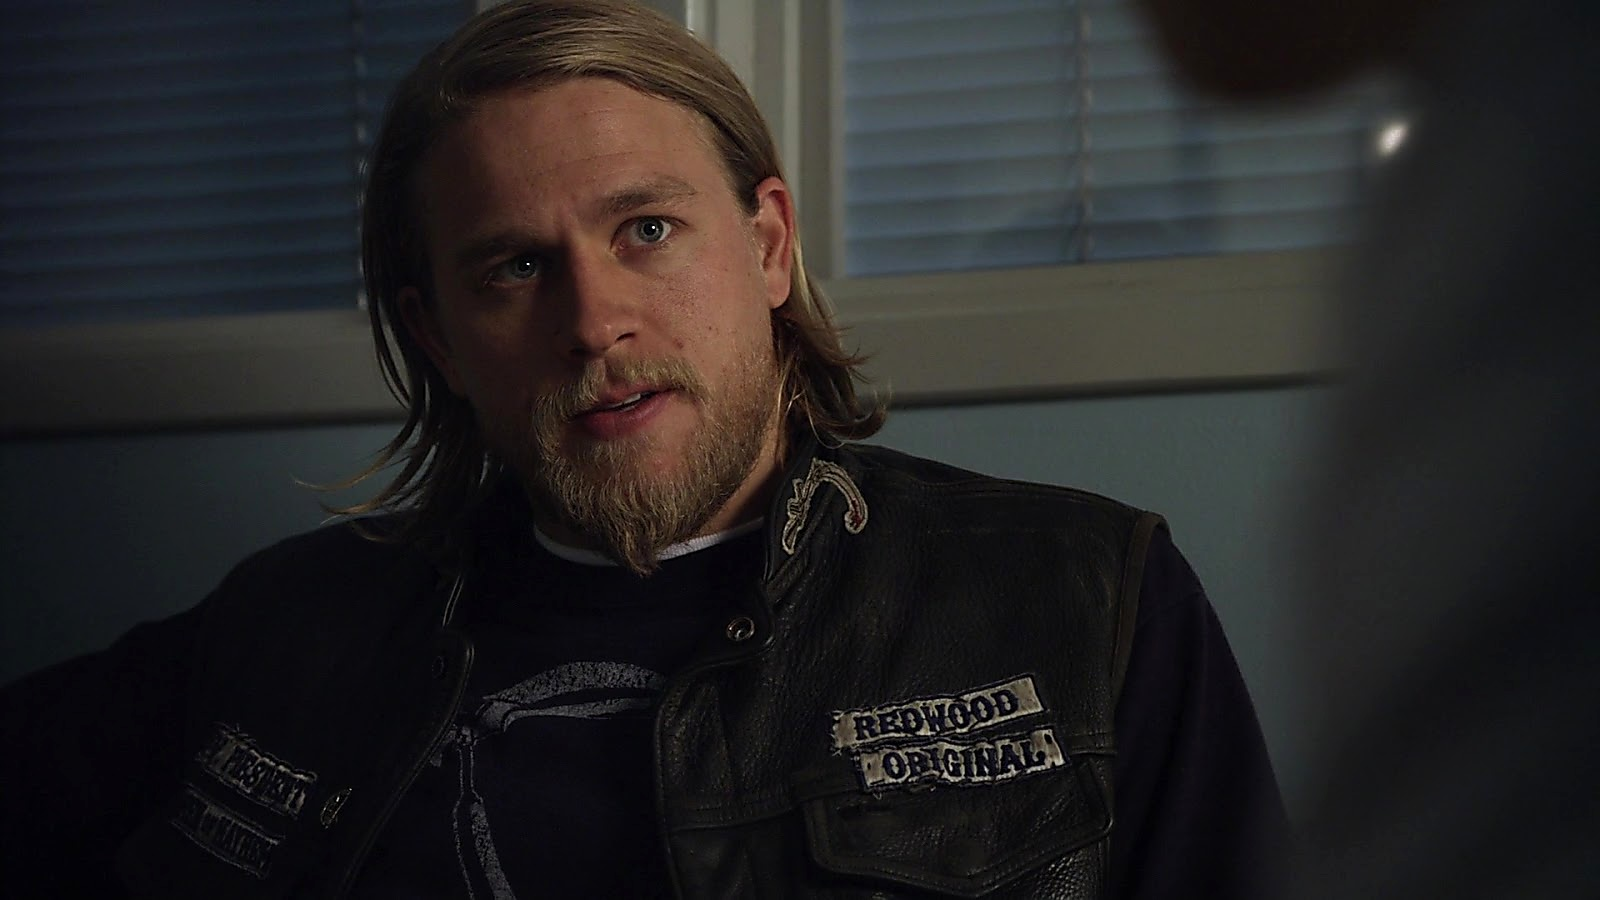 Charlie Hunnam Sons Of Anarchy S03E06 2020 04 24 1587721620 2